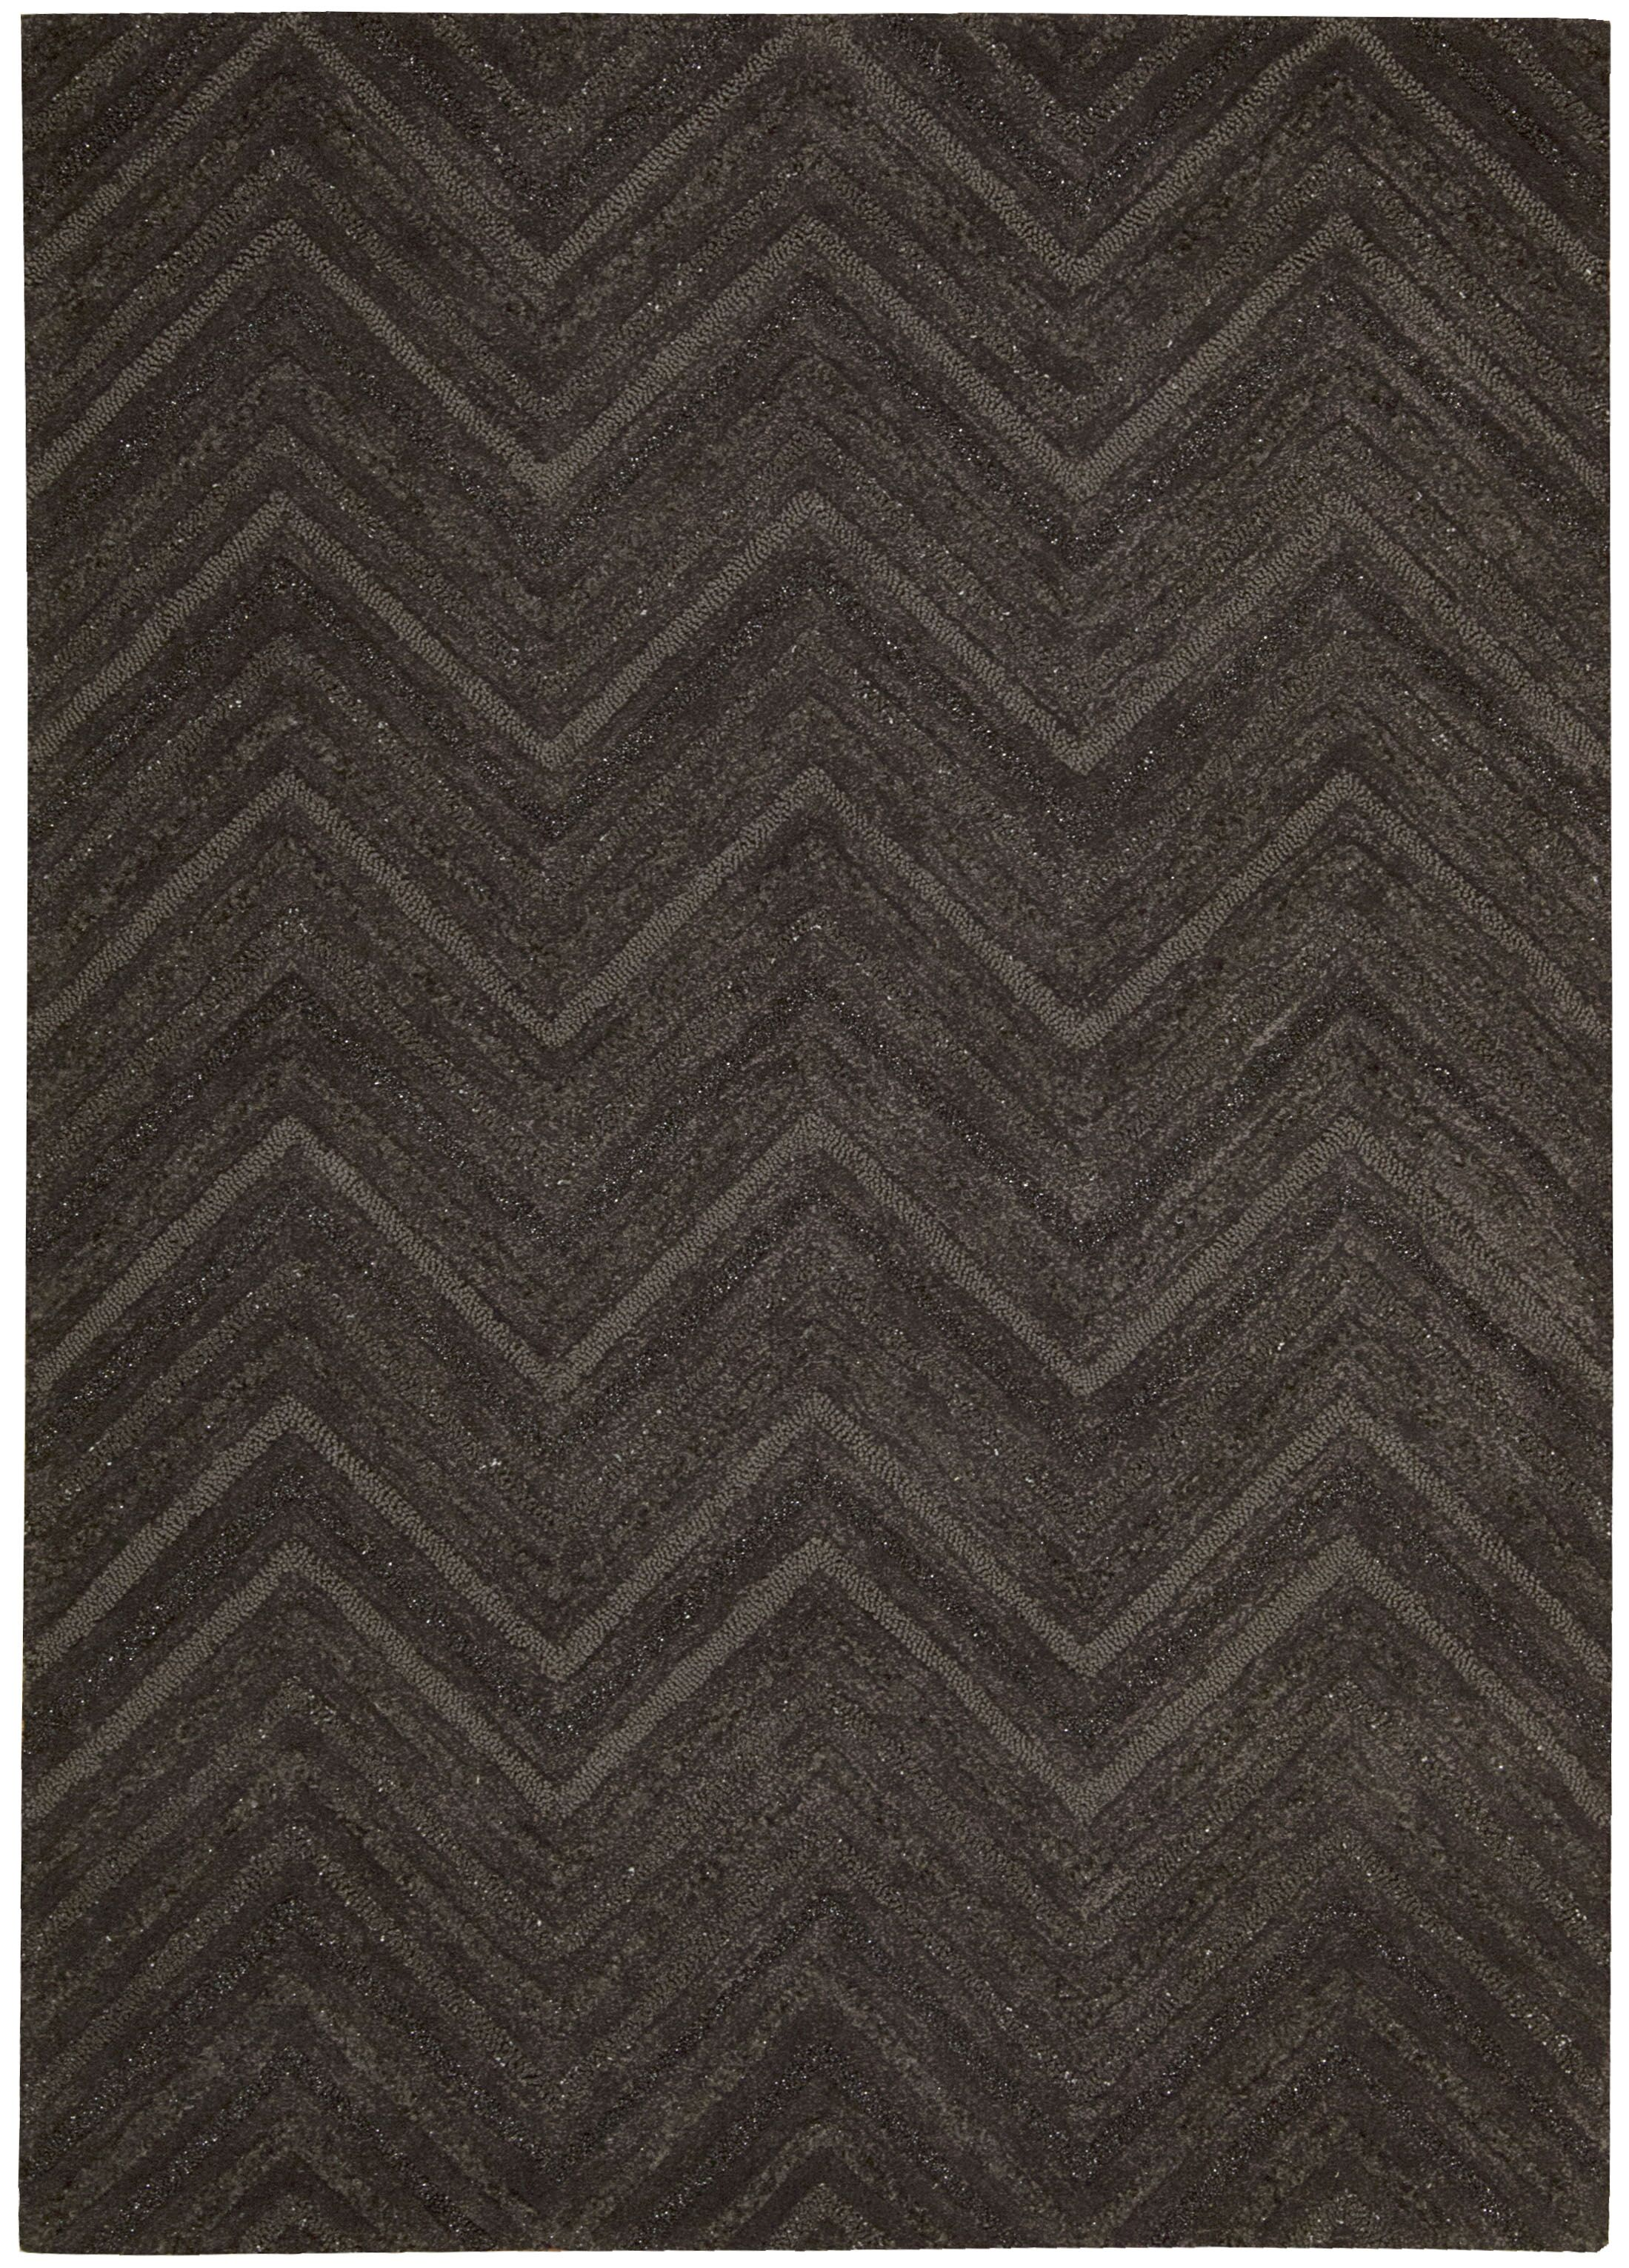 Rocco Hand-Woven Brown Area Rug Rug Size: Rectangle 4' x 6'